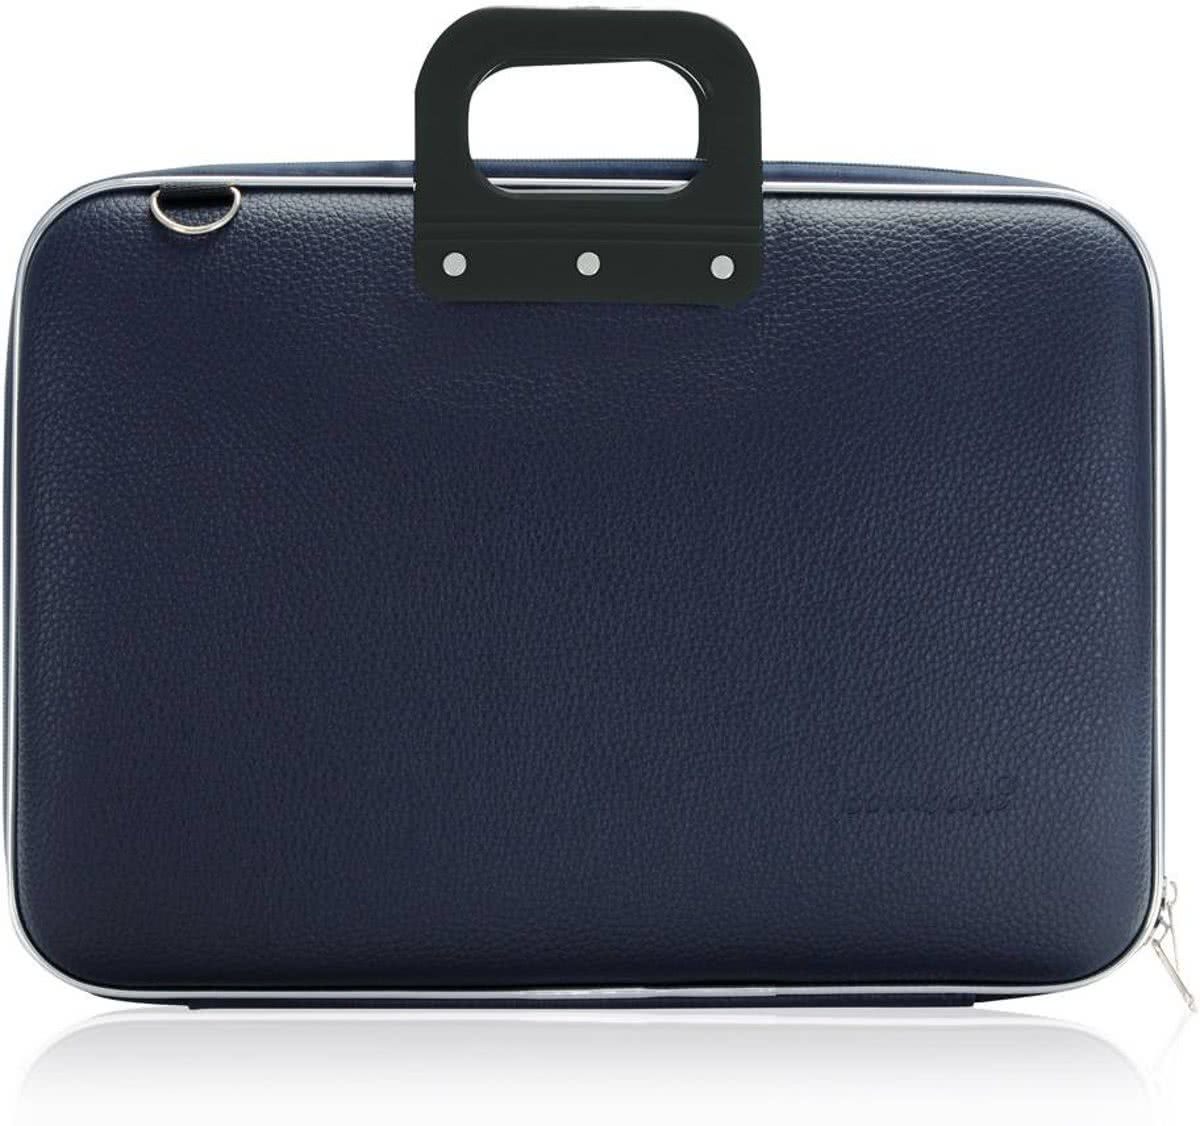 Bombata Bombata Classic Business Laptoptas Dark Blue